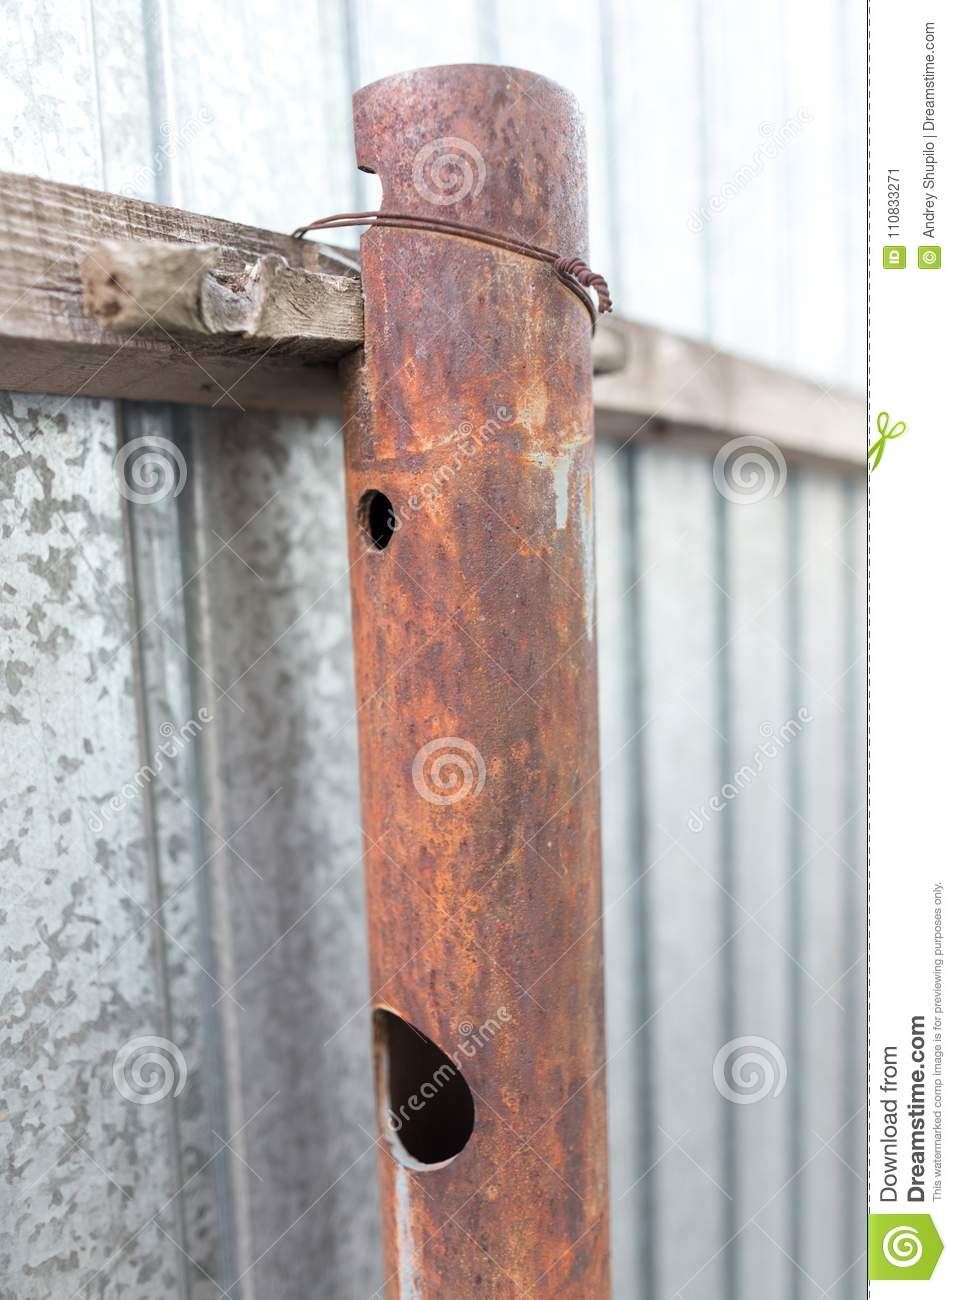 fortify rust cracked